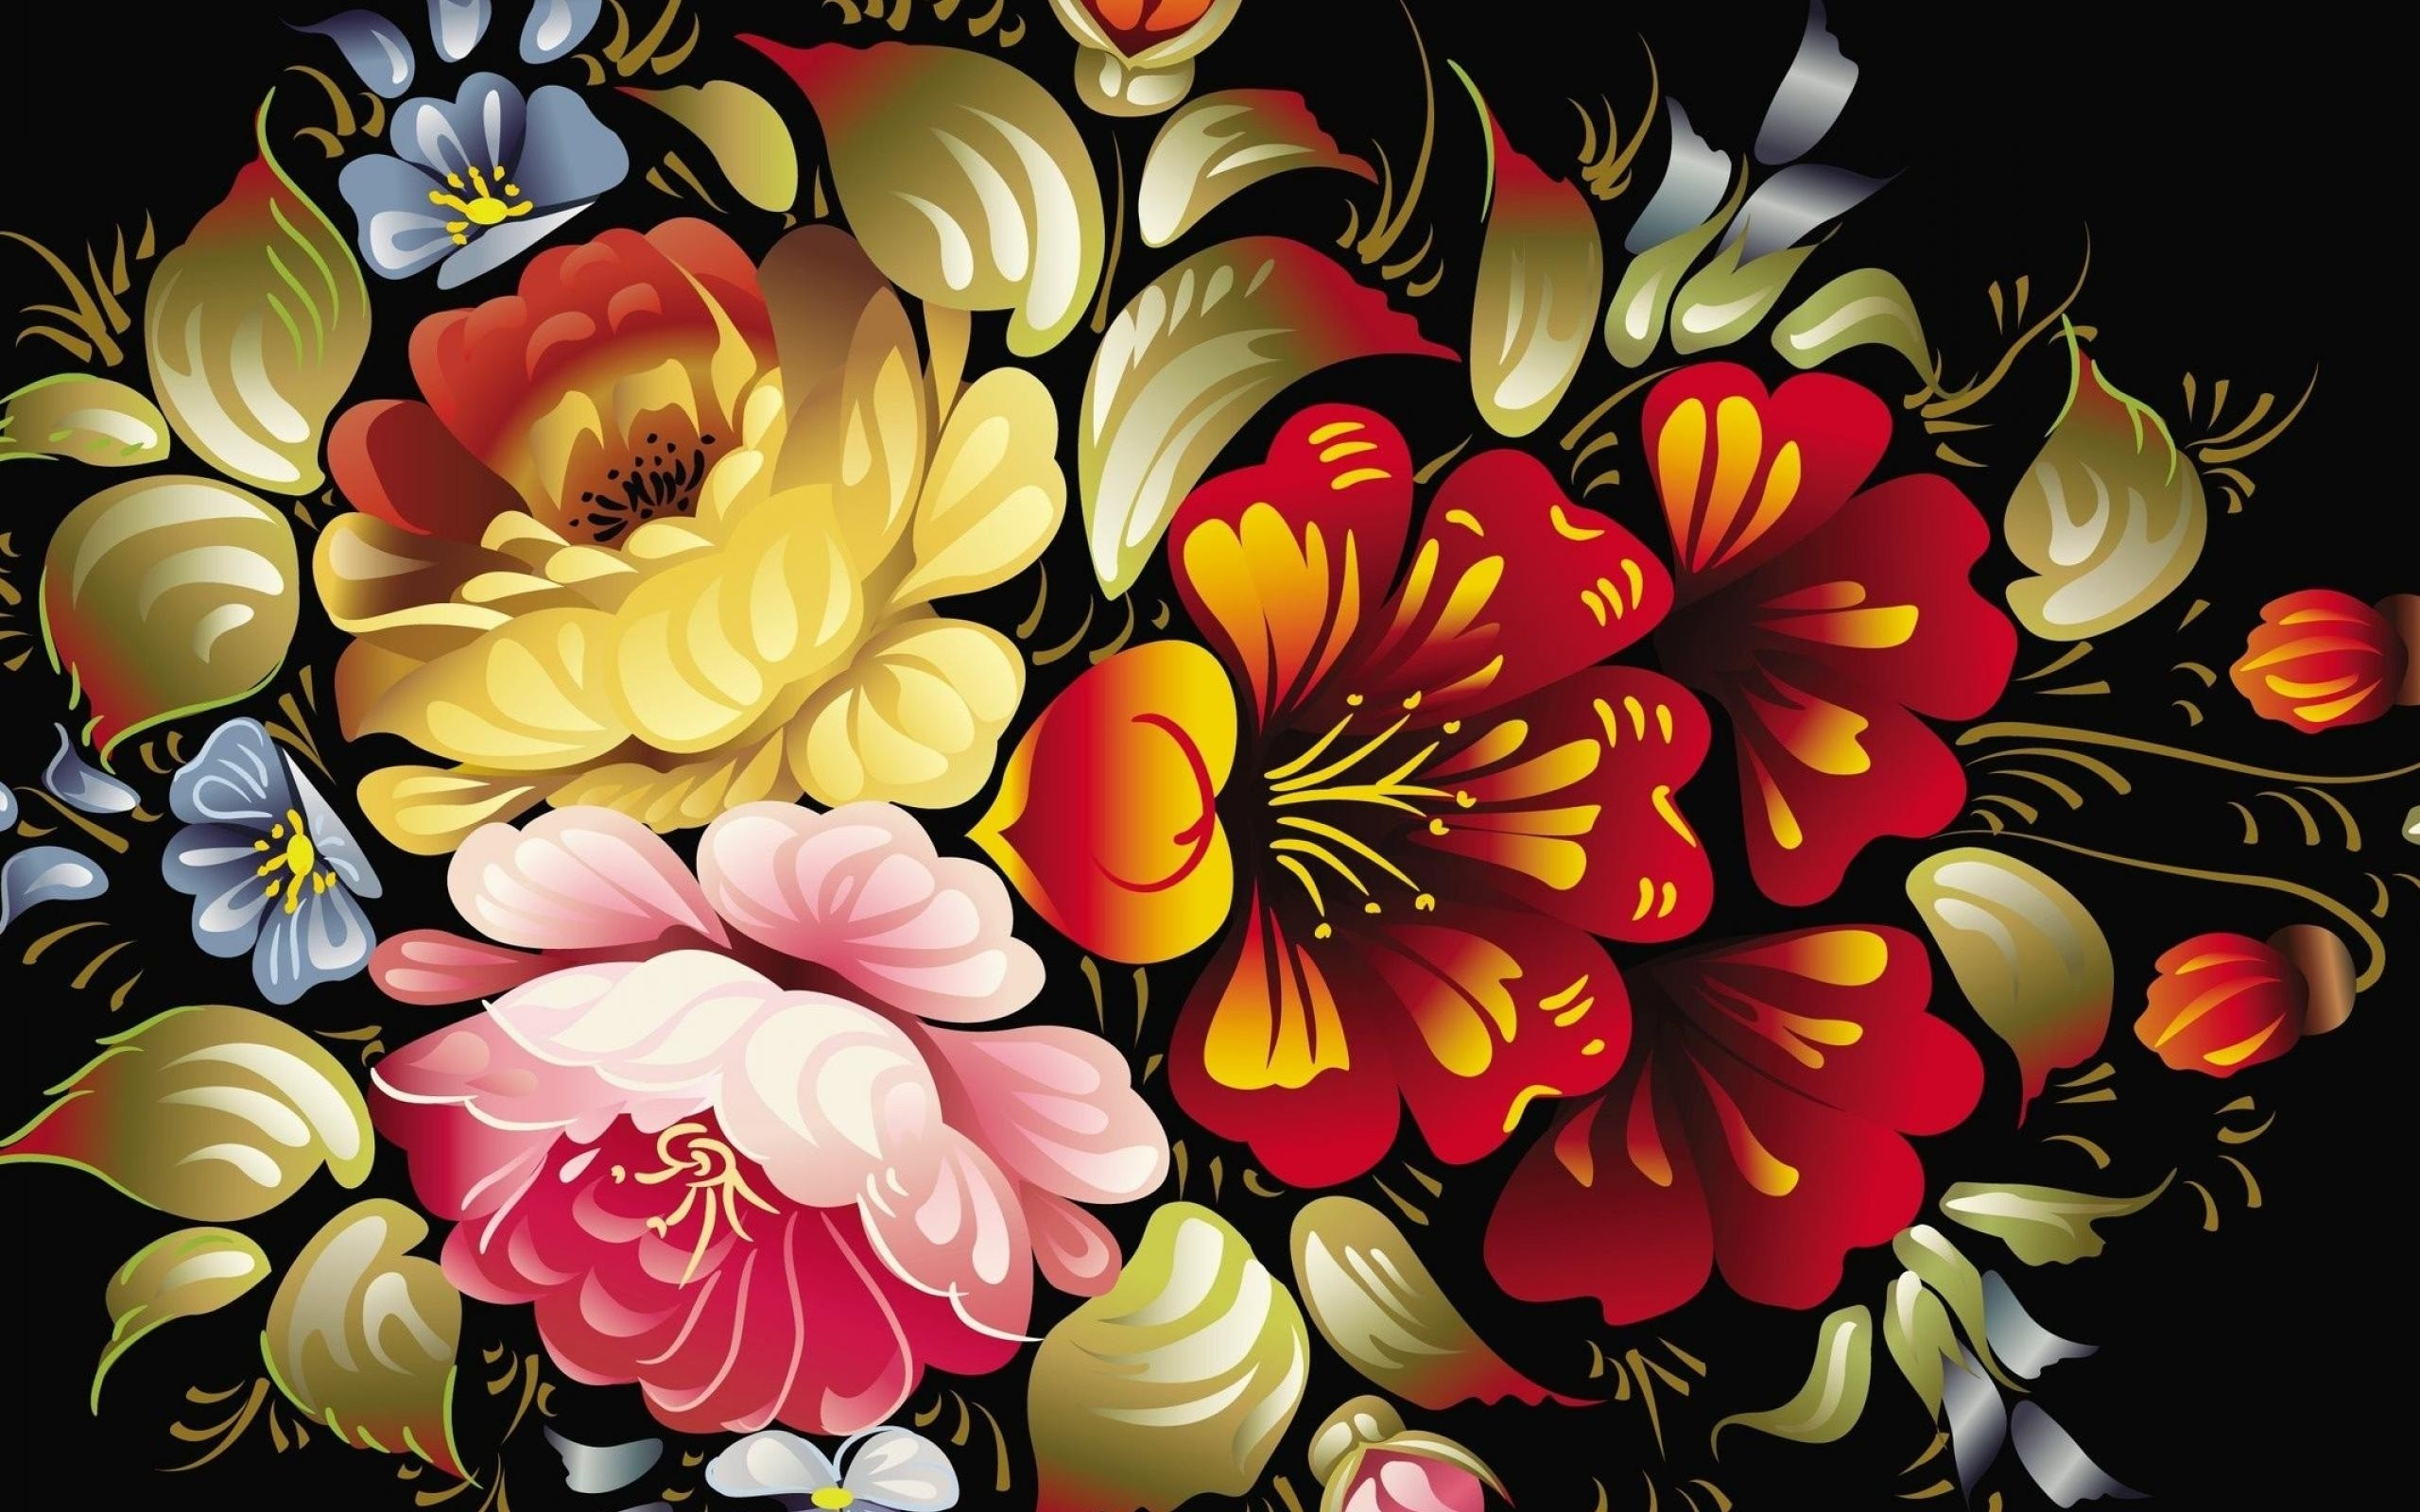 Res: 2560x1600, abstract flower hd wallpaper. abstract flower wallpapers hd.